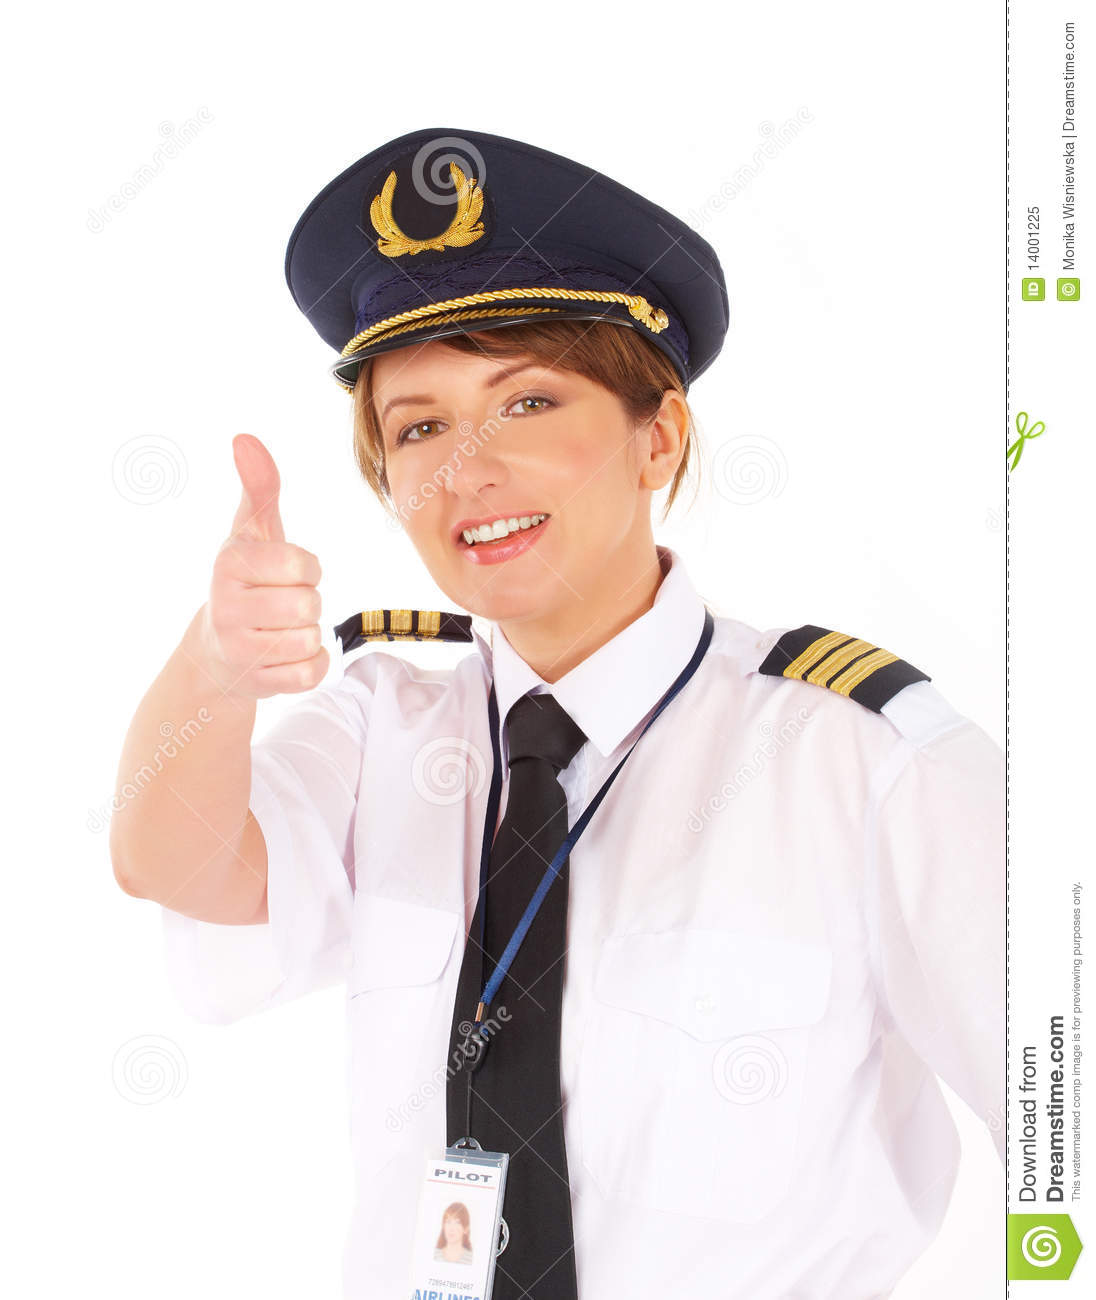 Airline Pilot Thumb Up Royalty Free Stock Photo  Image